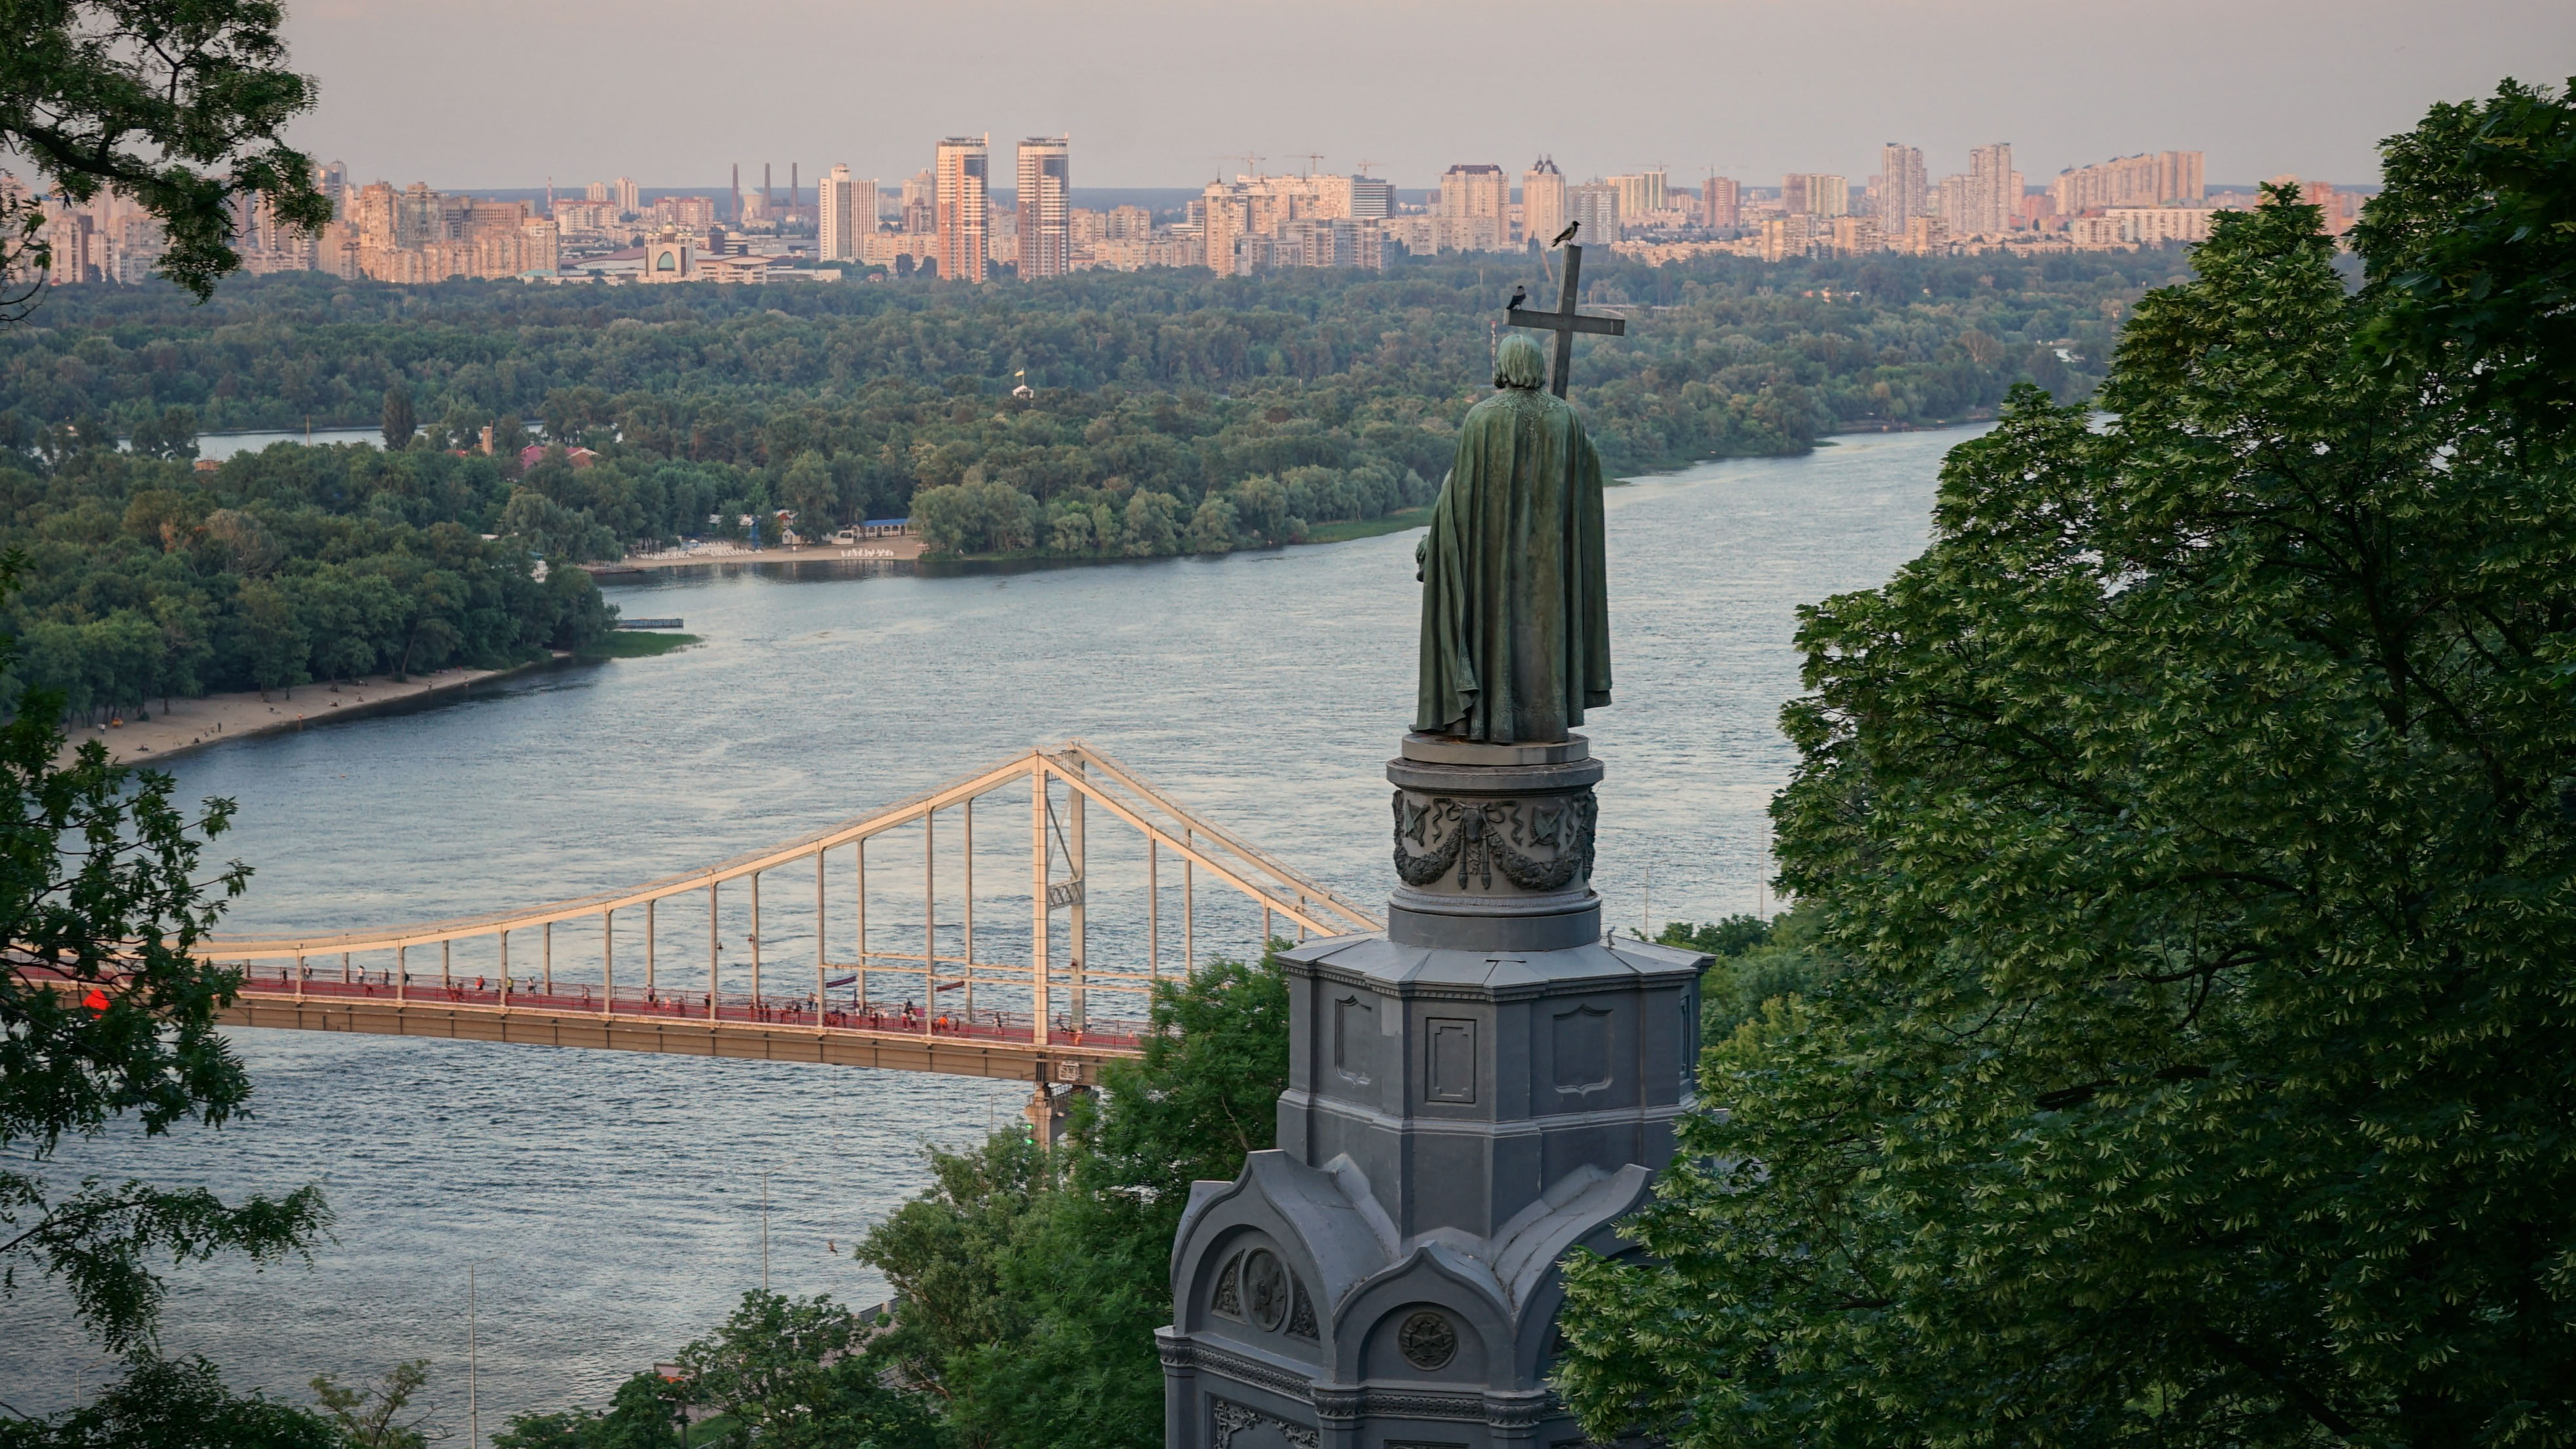 Monument to Prince Vladimir the Great overlooking the Dnieper River in Kyiv, Ukraine